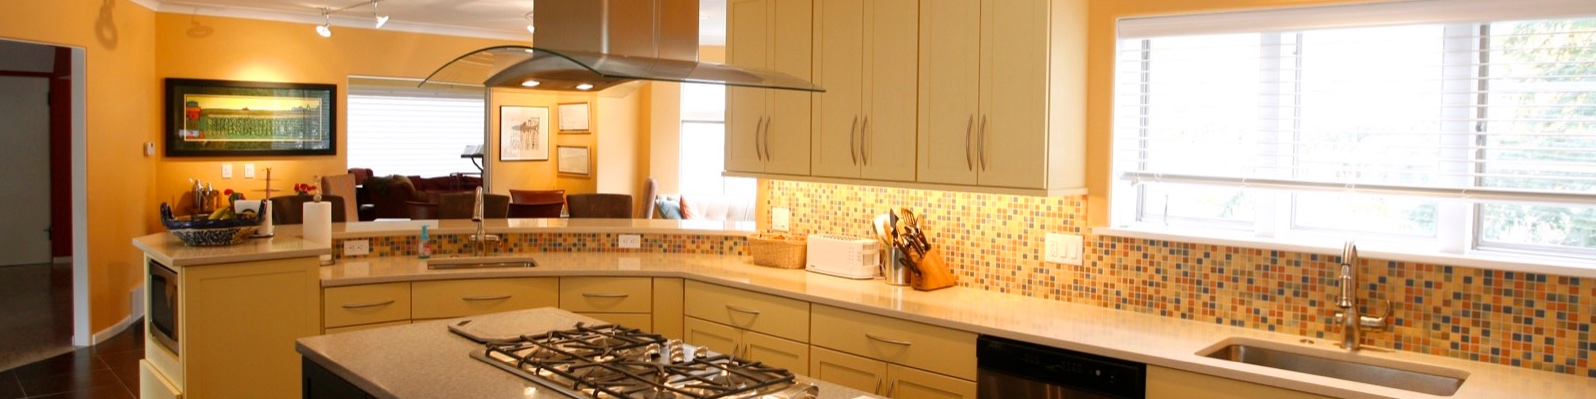 new-kitchen-banner